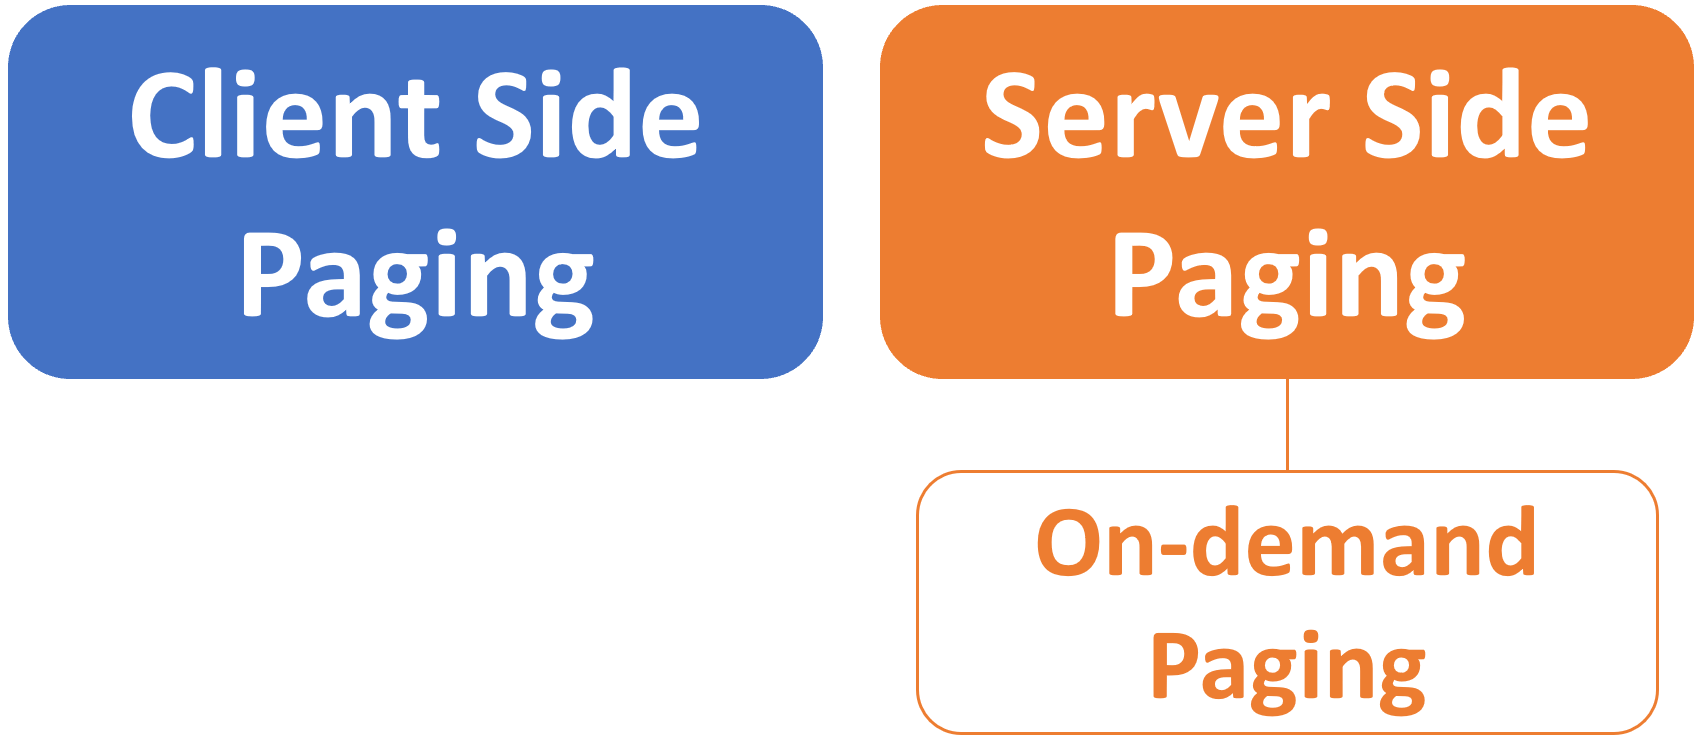 client side paging and server side paging in blazor